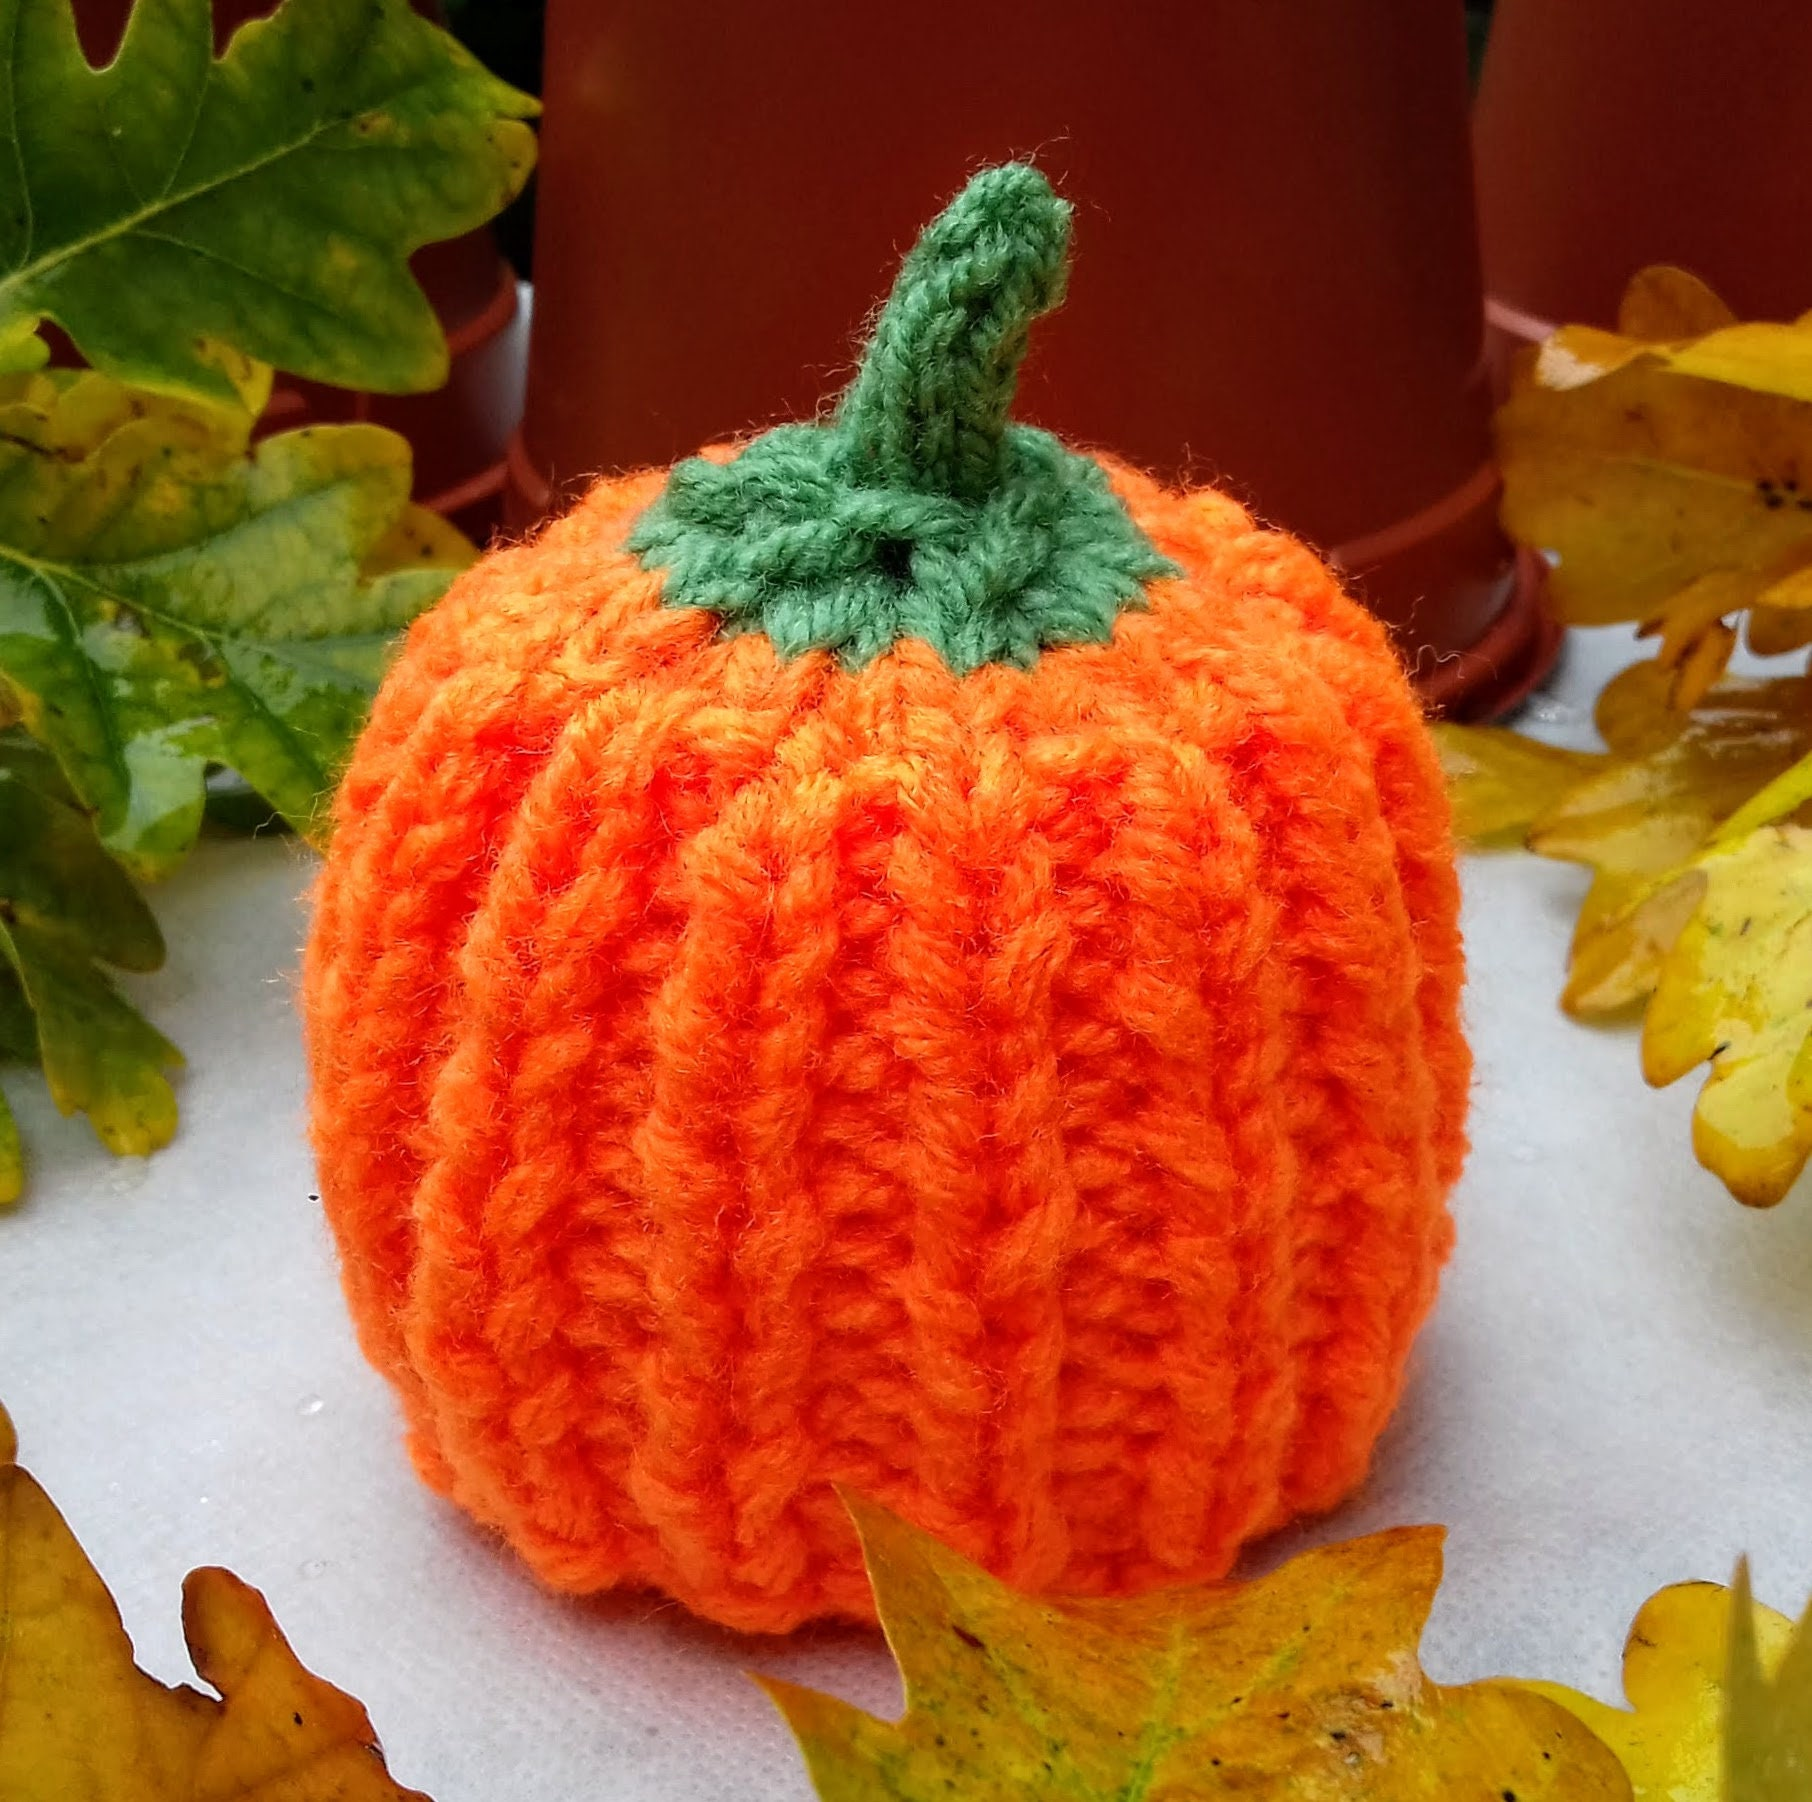 Pumpkin Chocolate Orange Cover Knitting Pattern, Halloween Knitting  Patterns For Toys, Knitted Halloween Decorations, Thanksgiving Cosy Gift